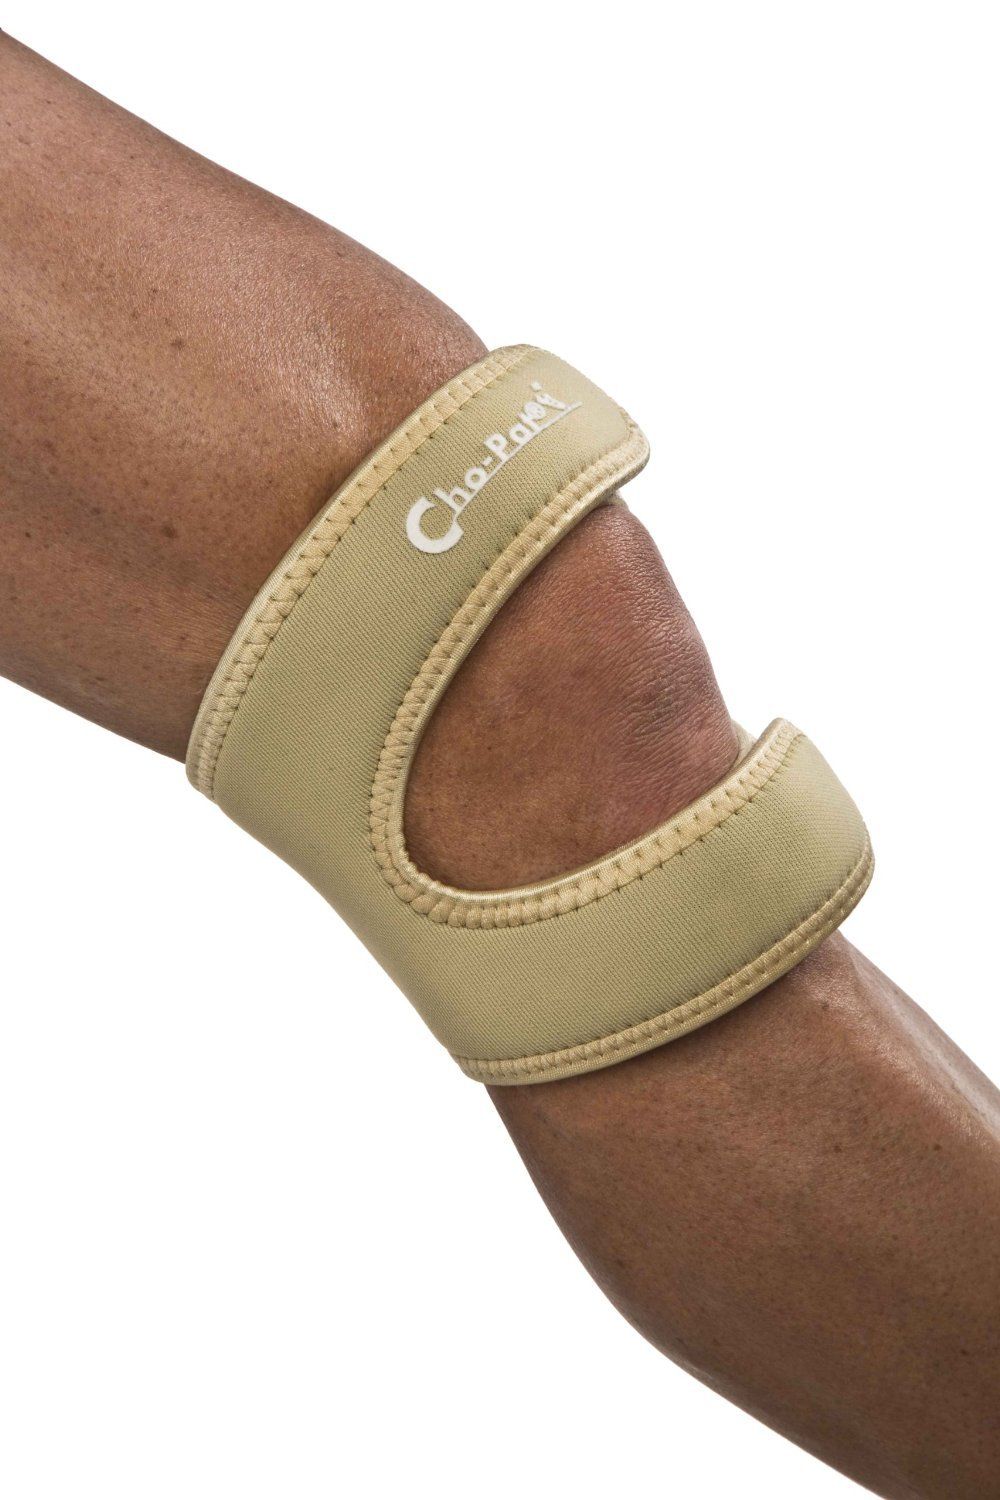 Cho-Pat Dual Action Knee Strap - Provides Full Mobility & Pain Relief For Weakened Knees - Tan (Medium, 14''-16'')